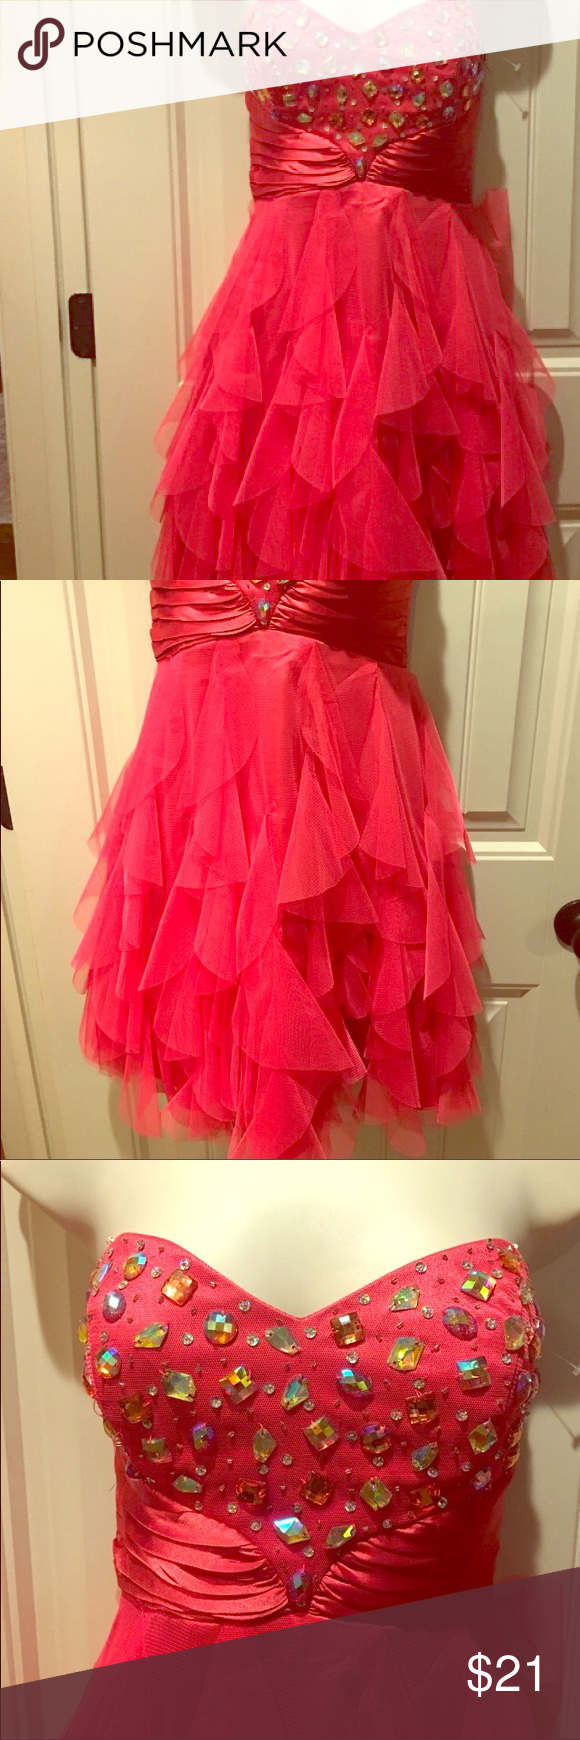 Guc flamingo cocktailsprom dress jr sz masquerade dresses